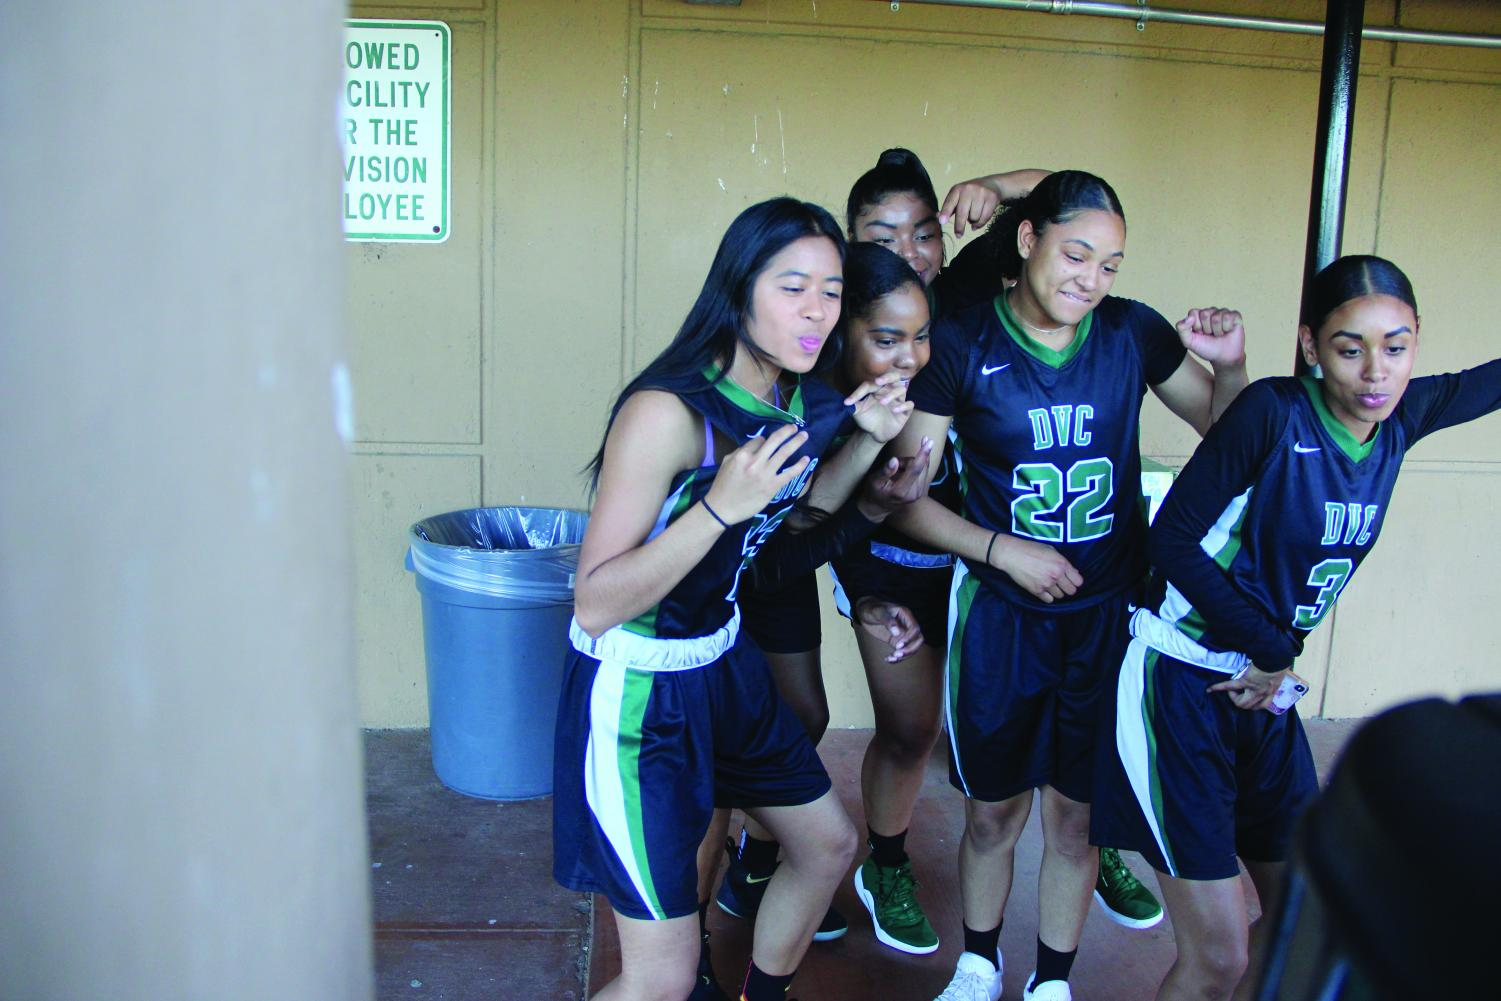 Women's Basketball Team Photoshoot – The Inquirer